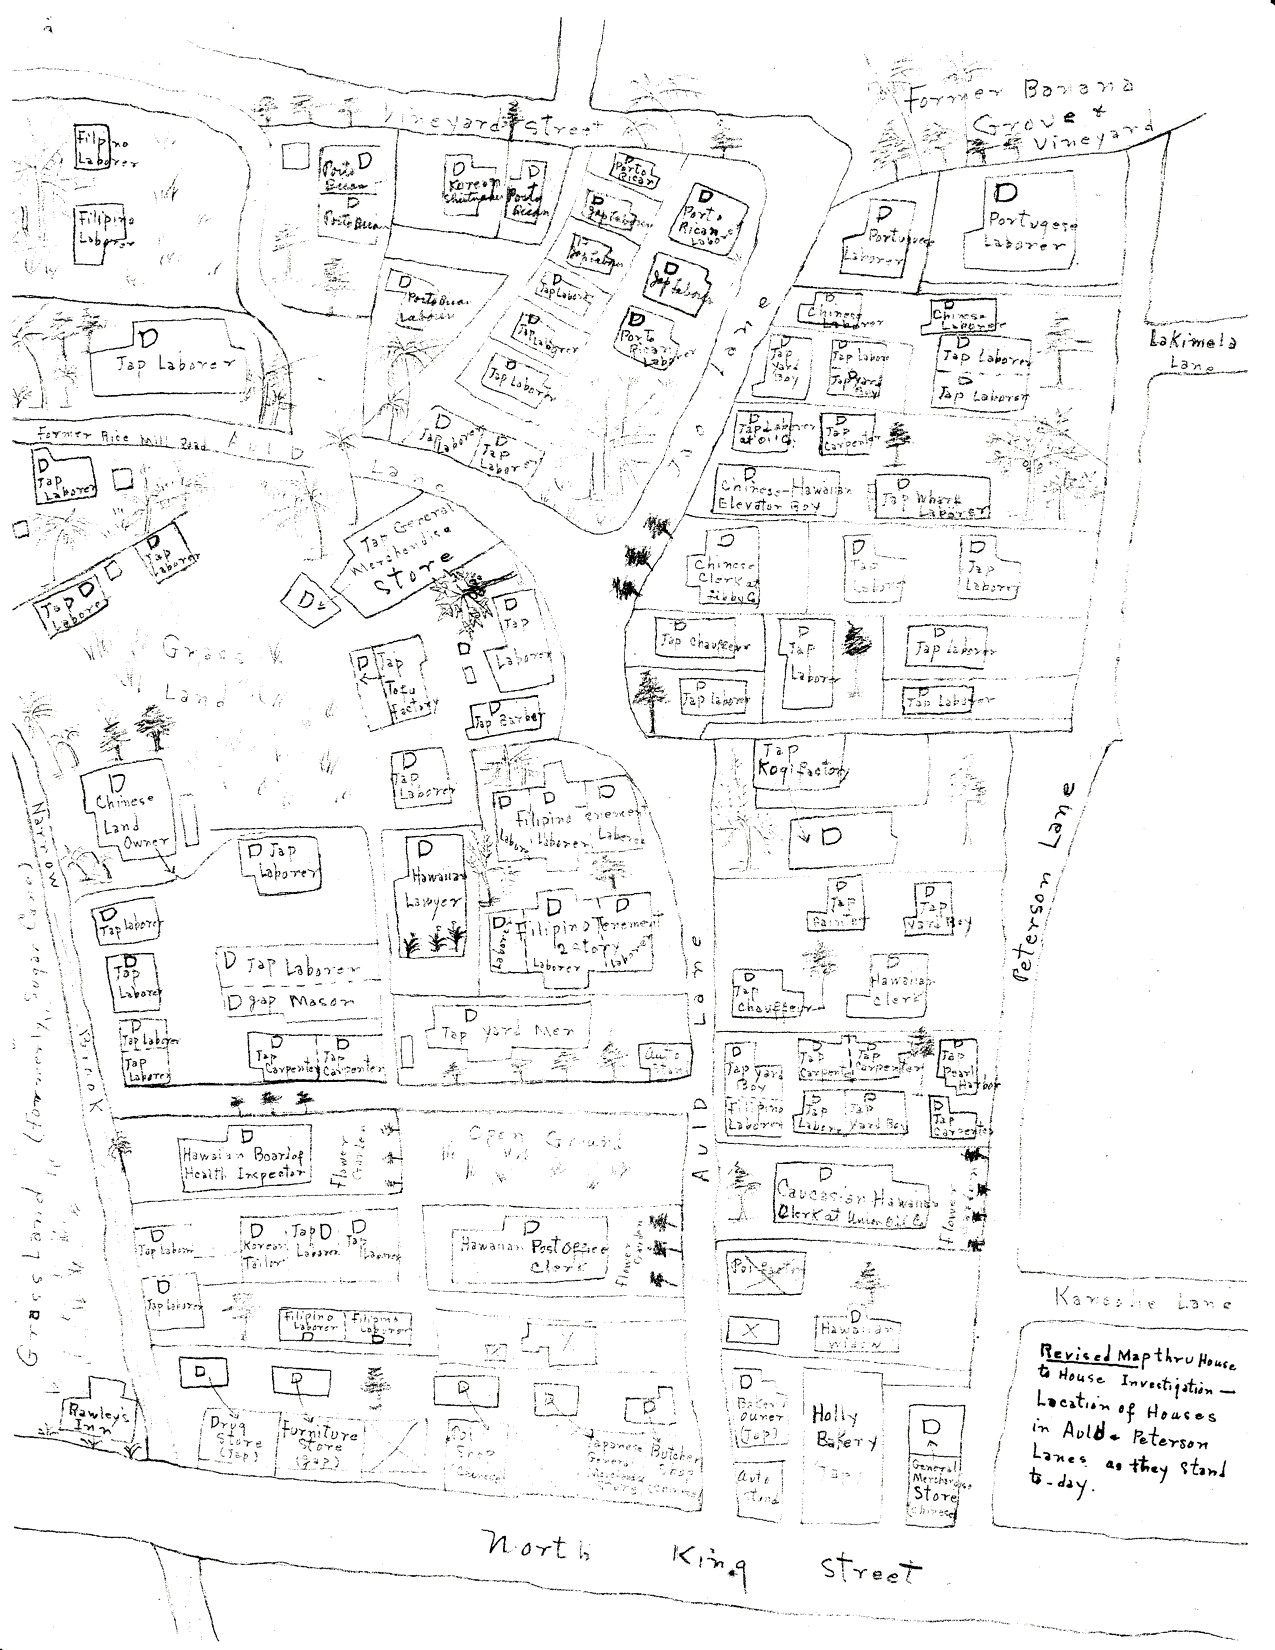 map of Auld Lane_Nakamura, T box A7